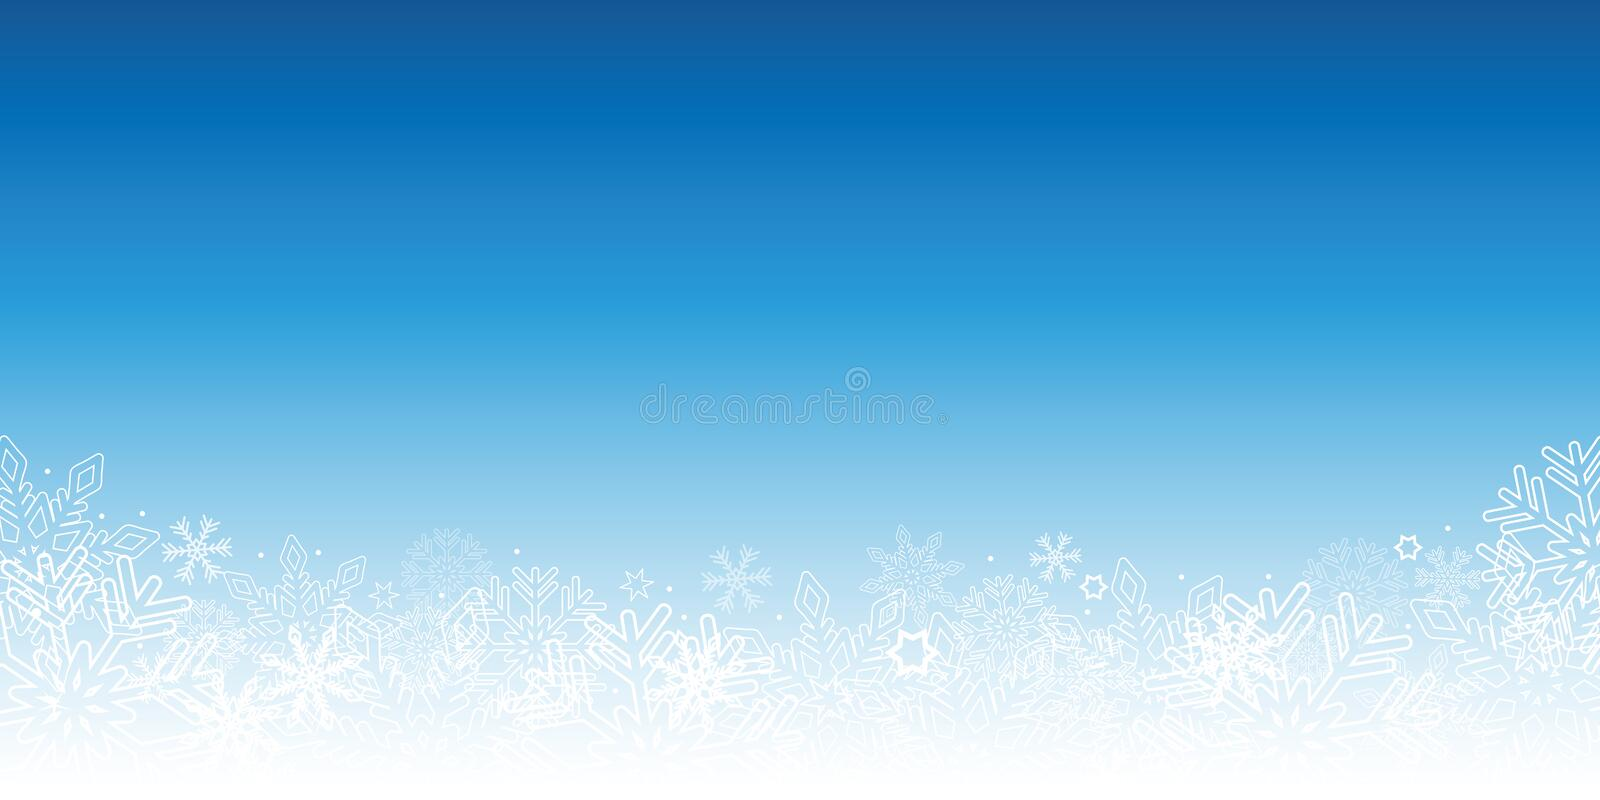 Snowy blue winter background with snowflakes stock illustration